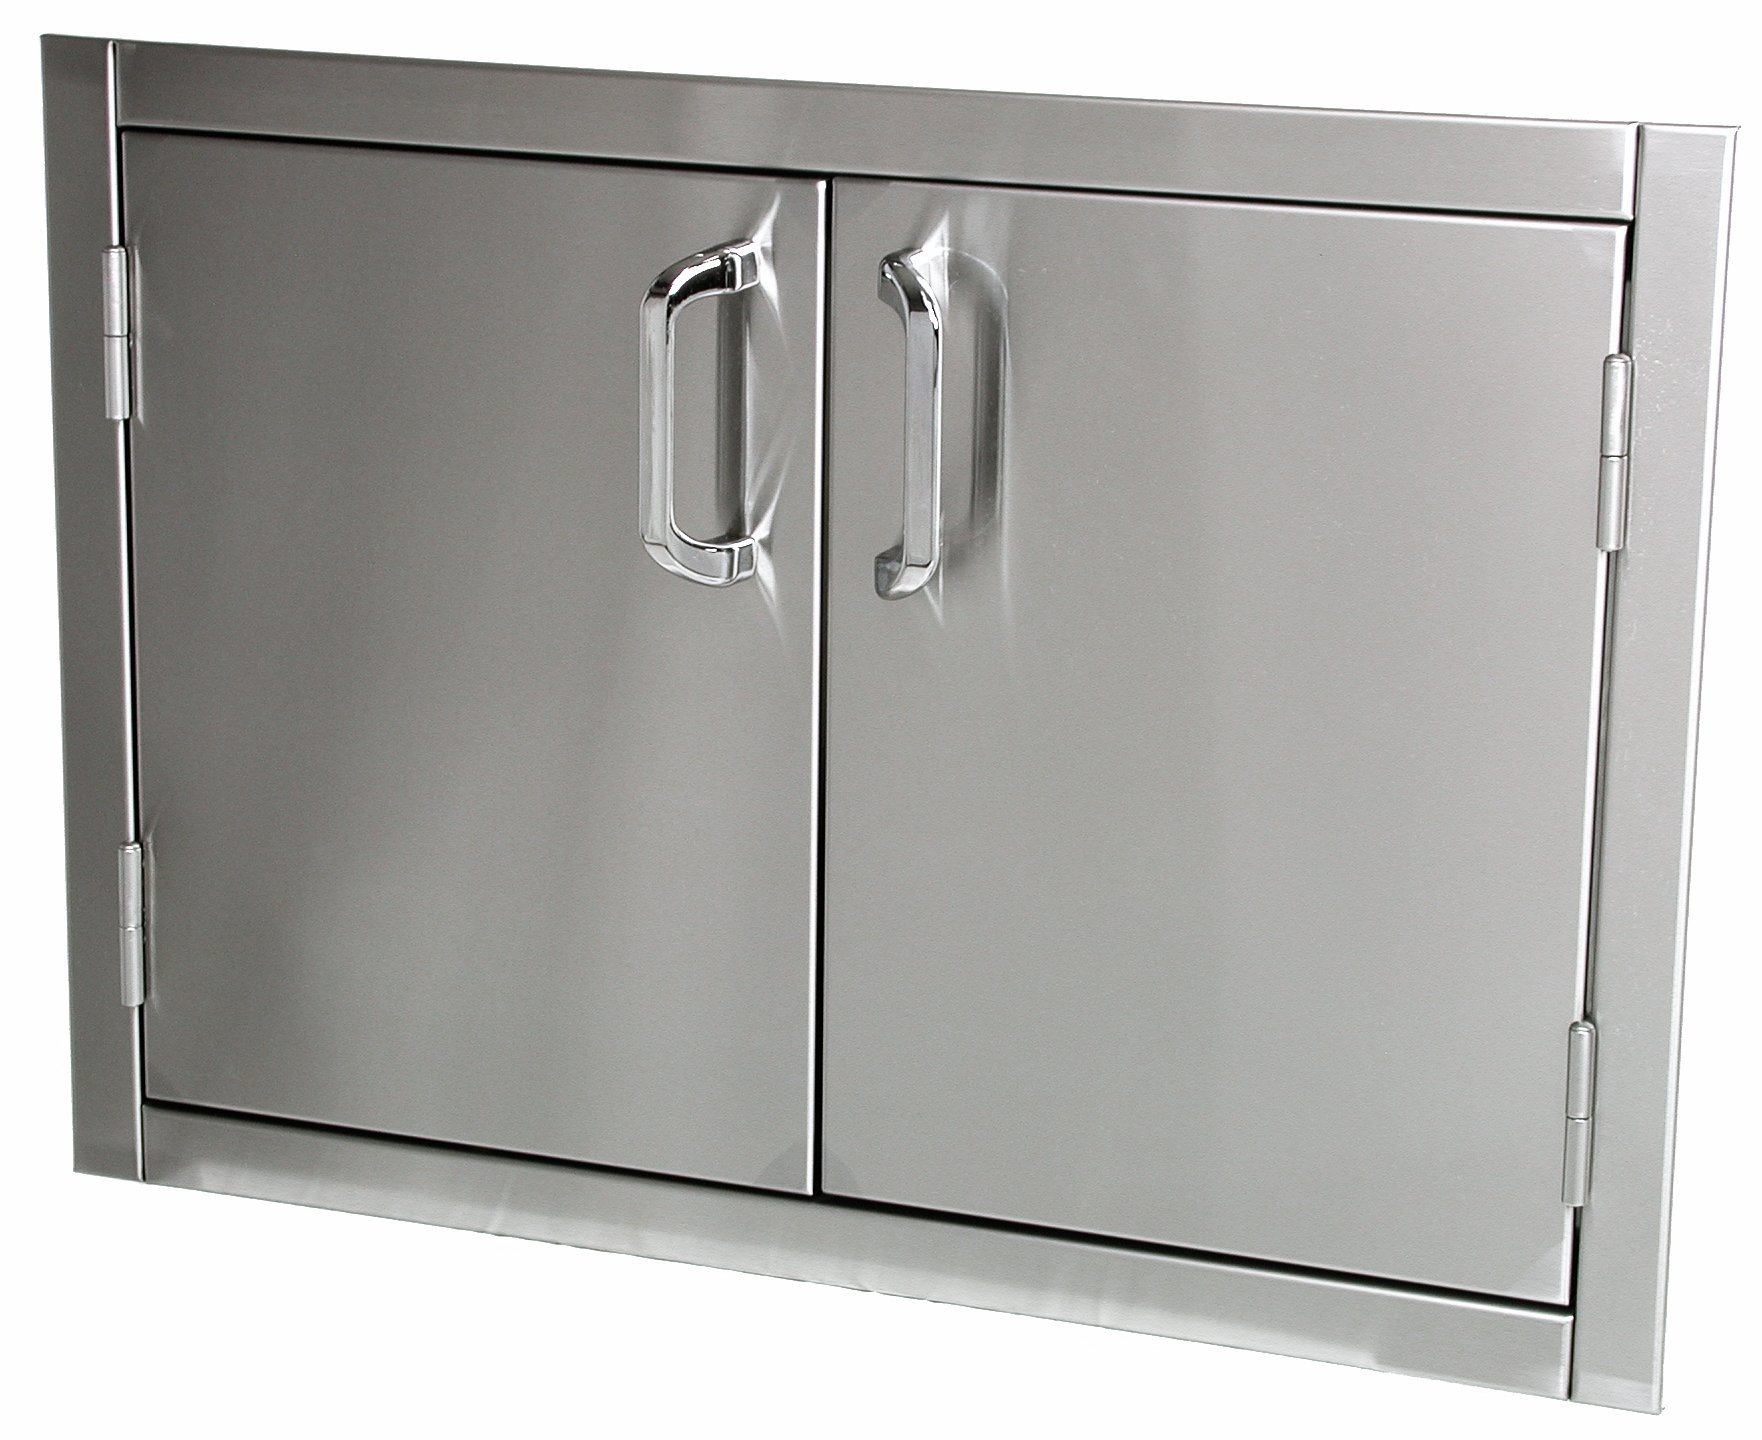 Solaire 30-Inch Flush Mount Access Doors, Stainless Steel